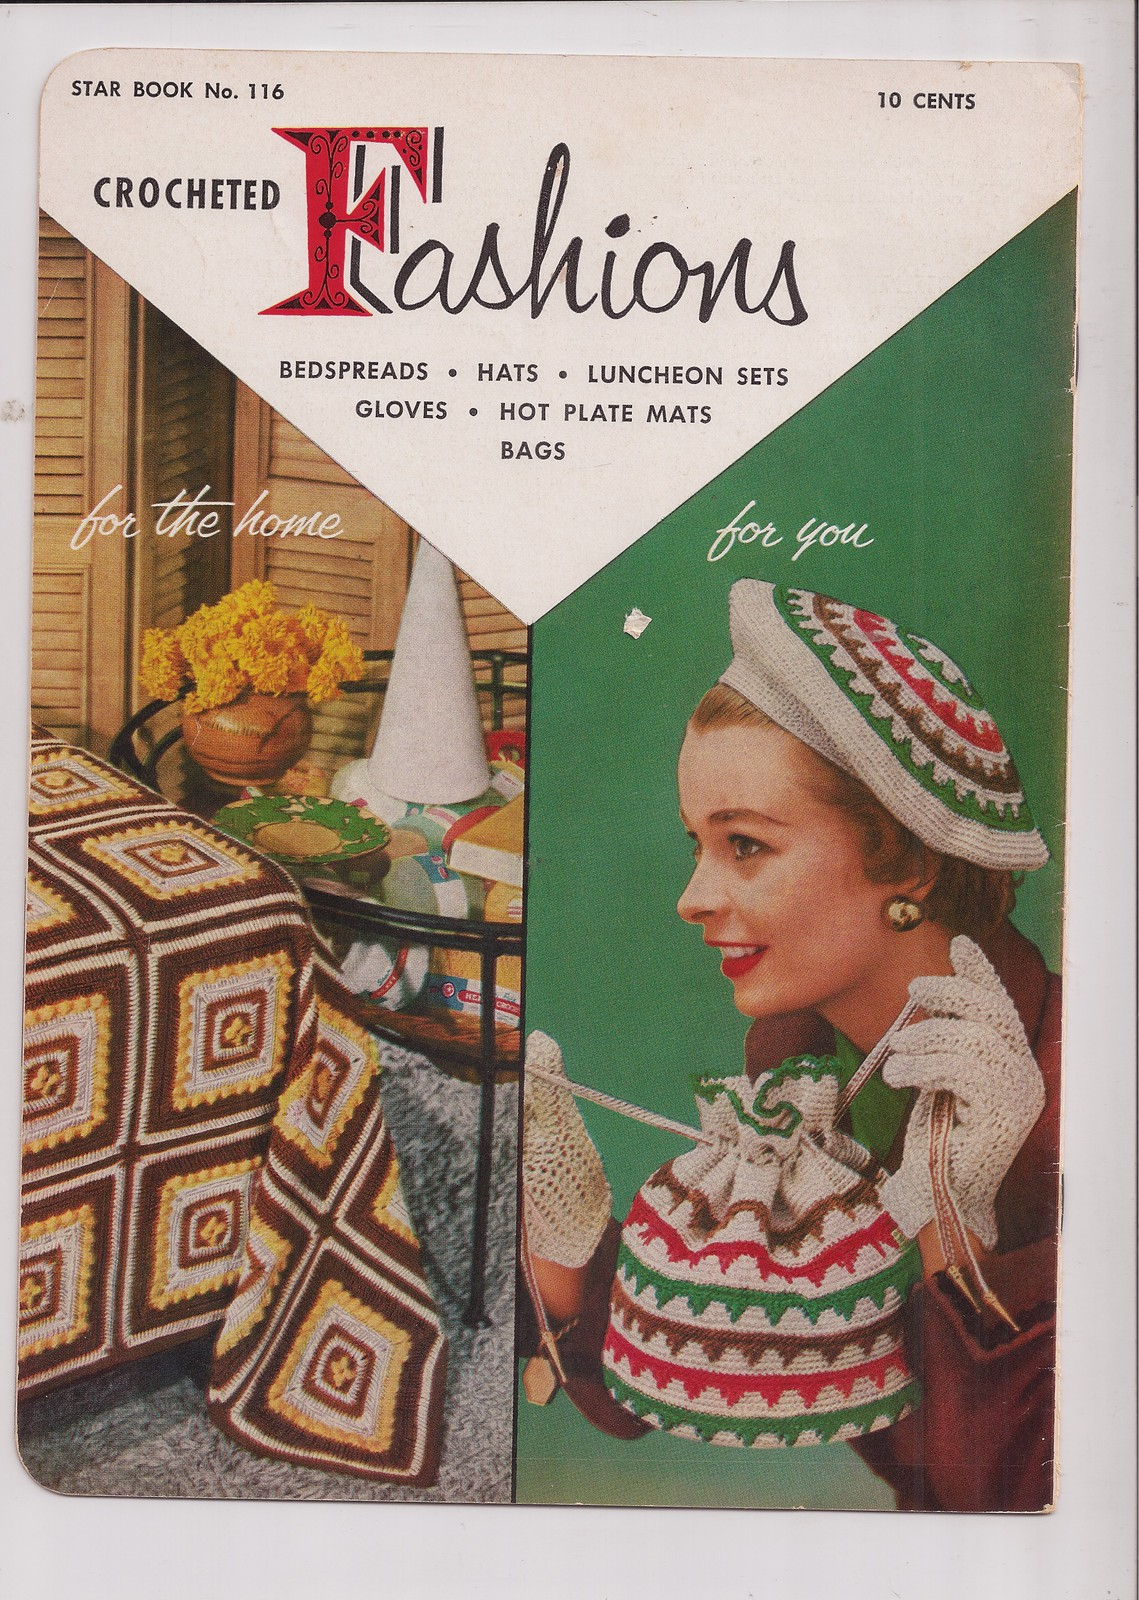 Crocheted Fashions for You and For the Home American Thread Star Book No 116